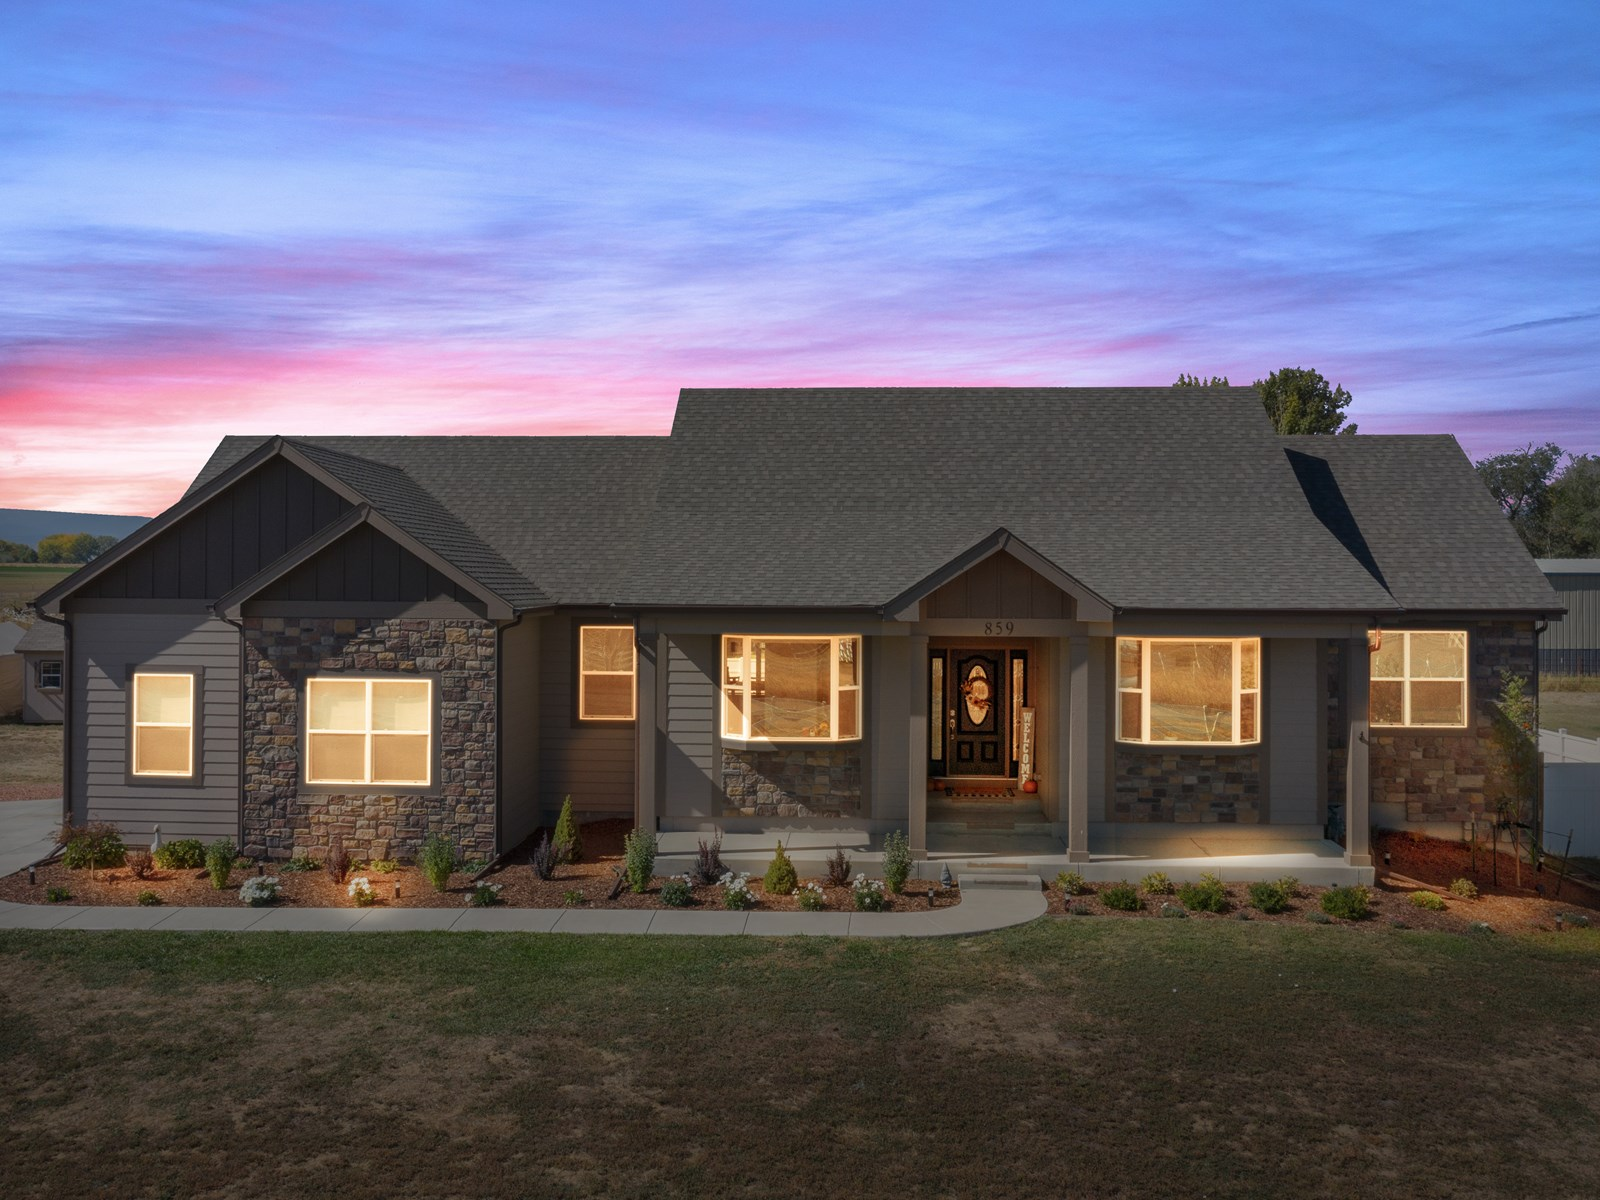 Country Horse Homes Property For Sale Loveland Colorado